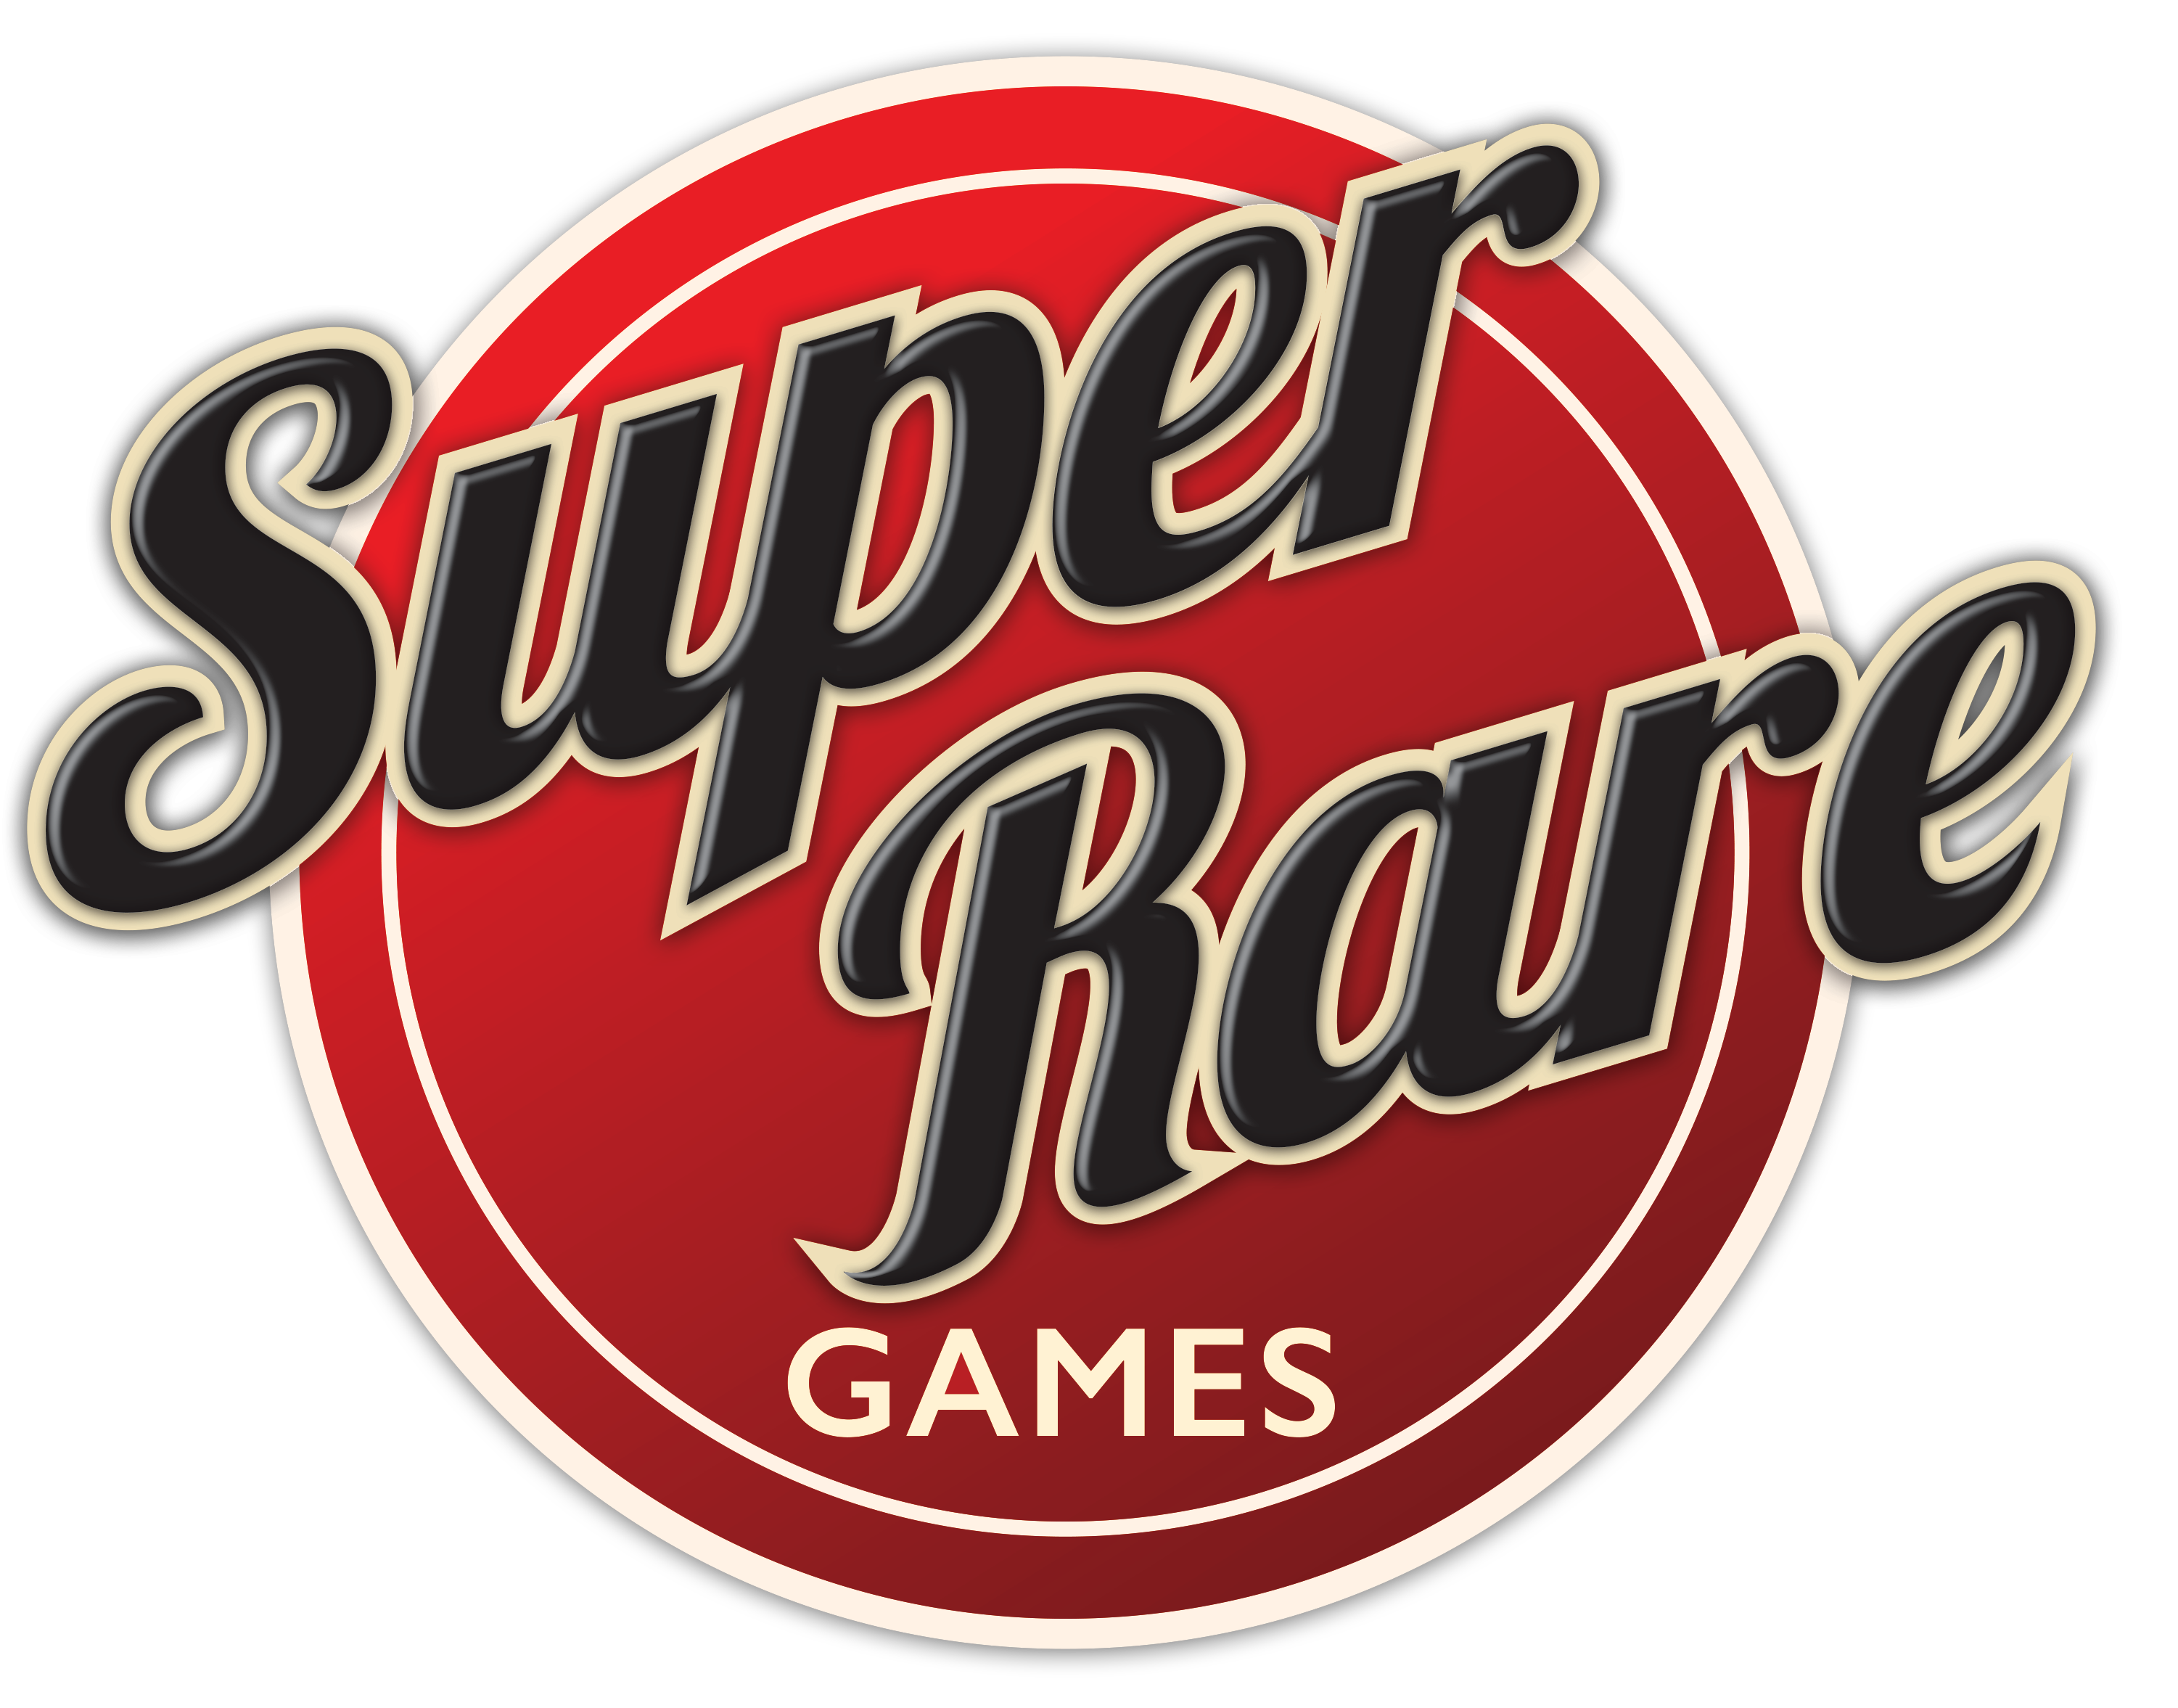 Super Rare Games logo